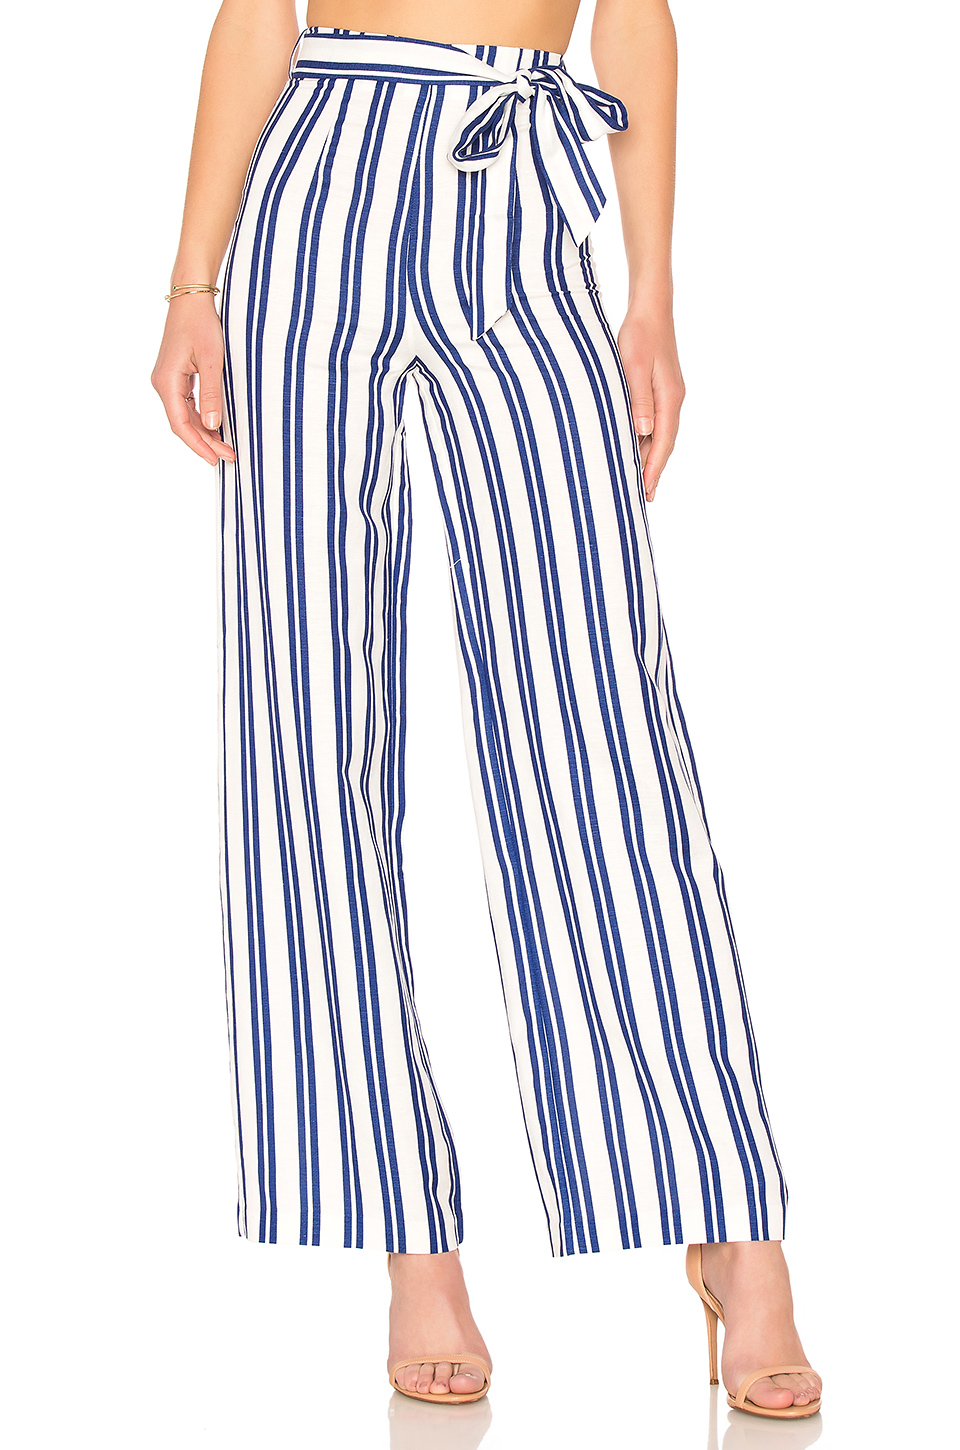 L'Academie The Lani Pant in Ocean Stripe